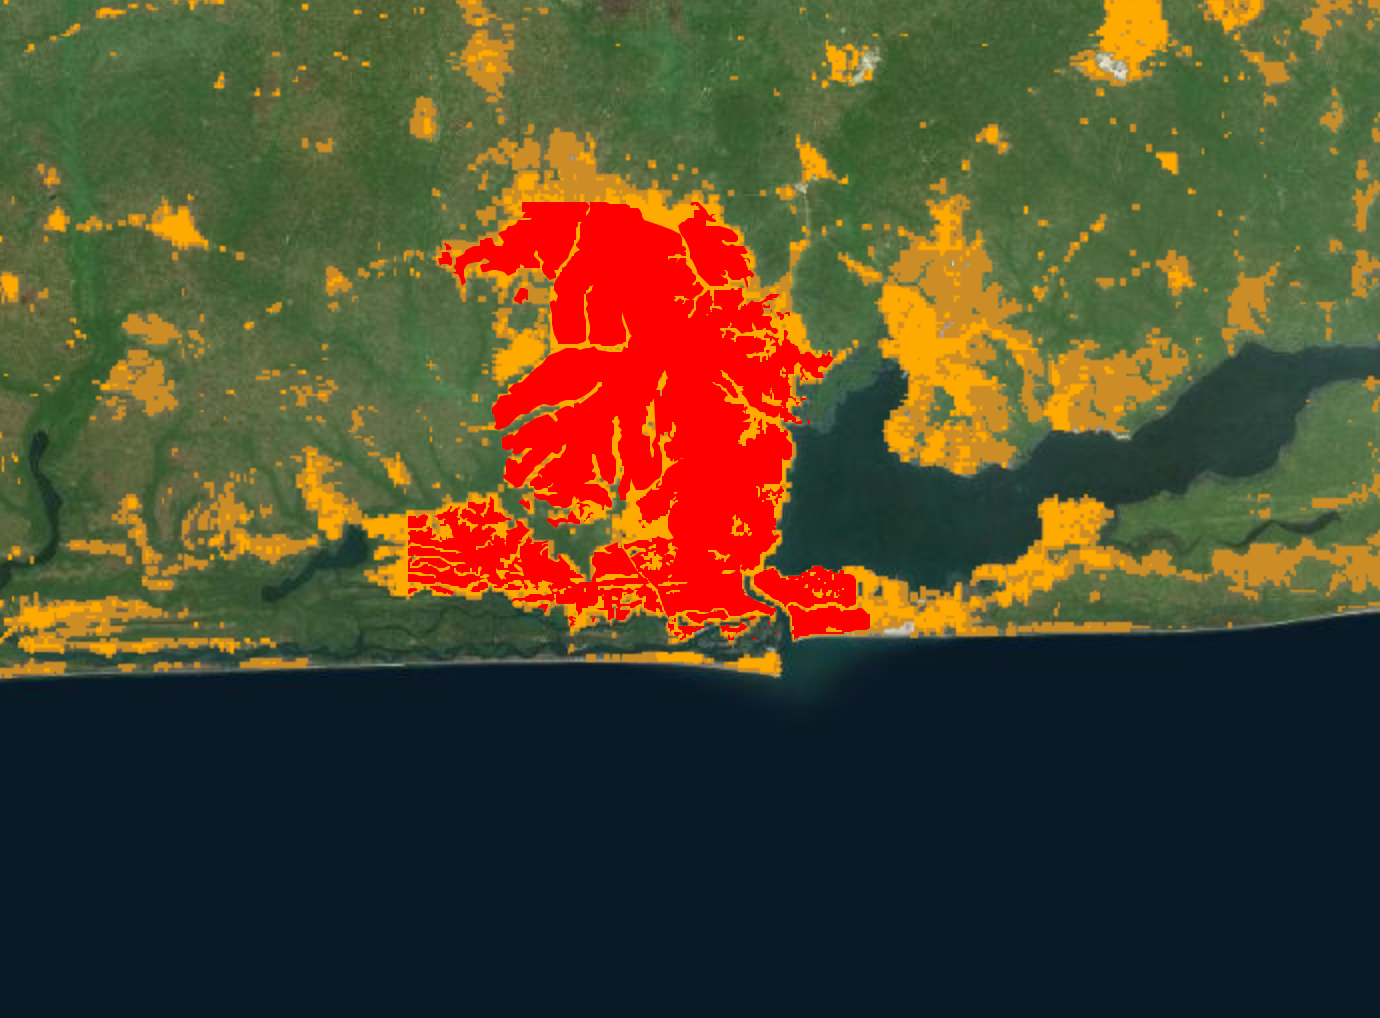 Lagos, Nigeria en la actualidad. Imagen via http://storymaps.esri.com/stories/2014/growth-of-cities/